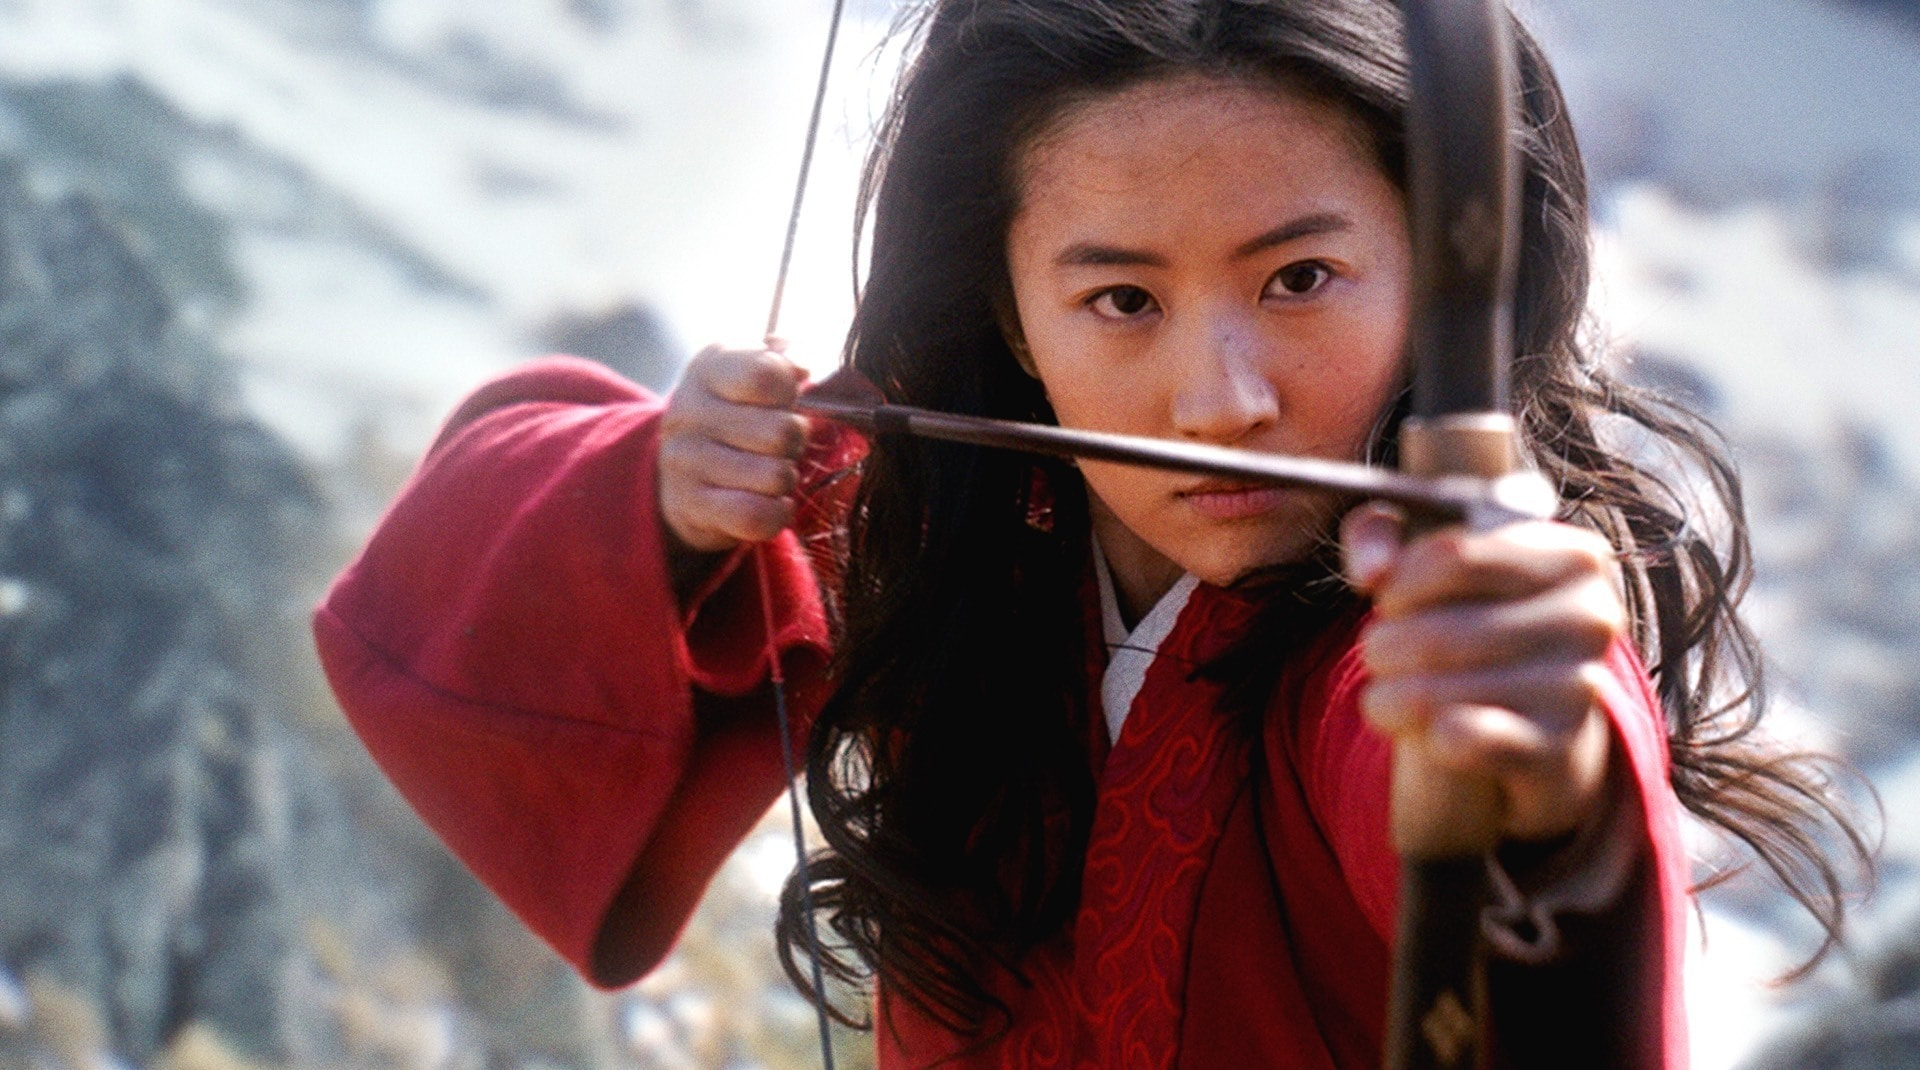 A still image of Mulan holding a bow and arrow